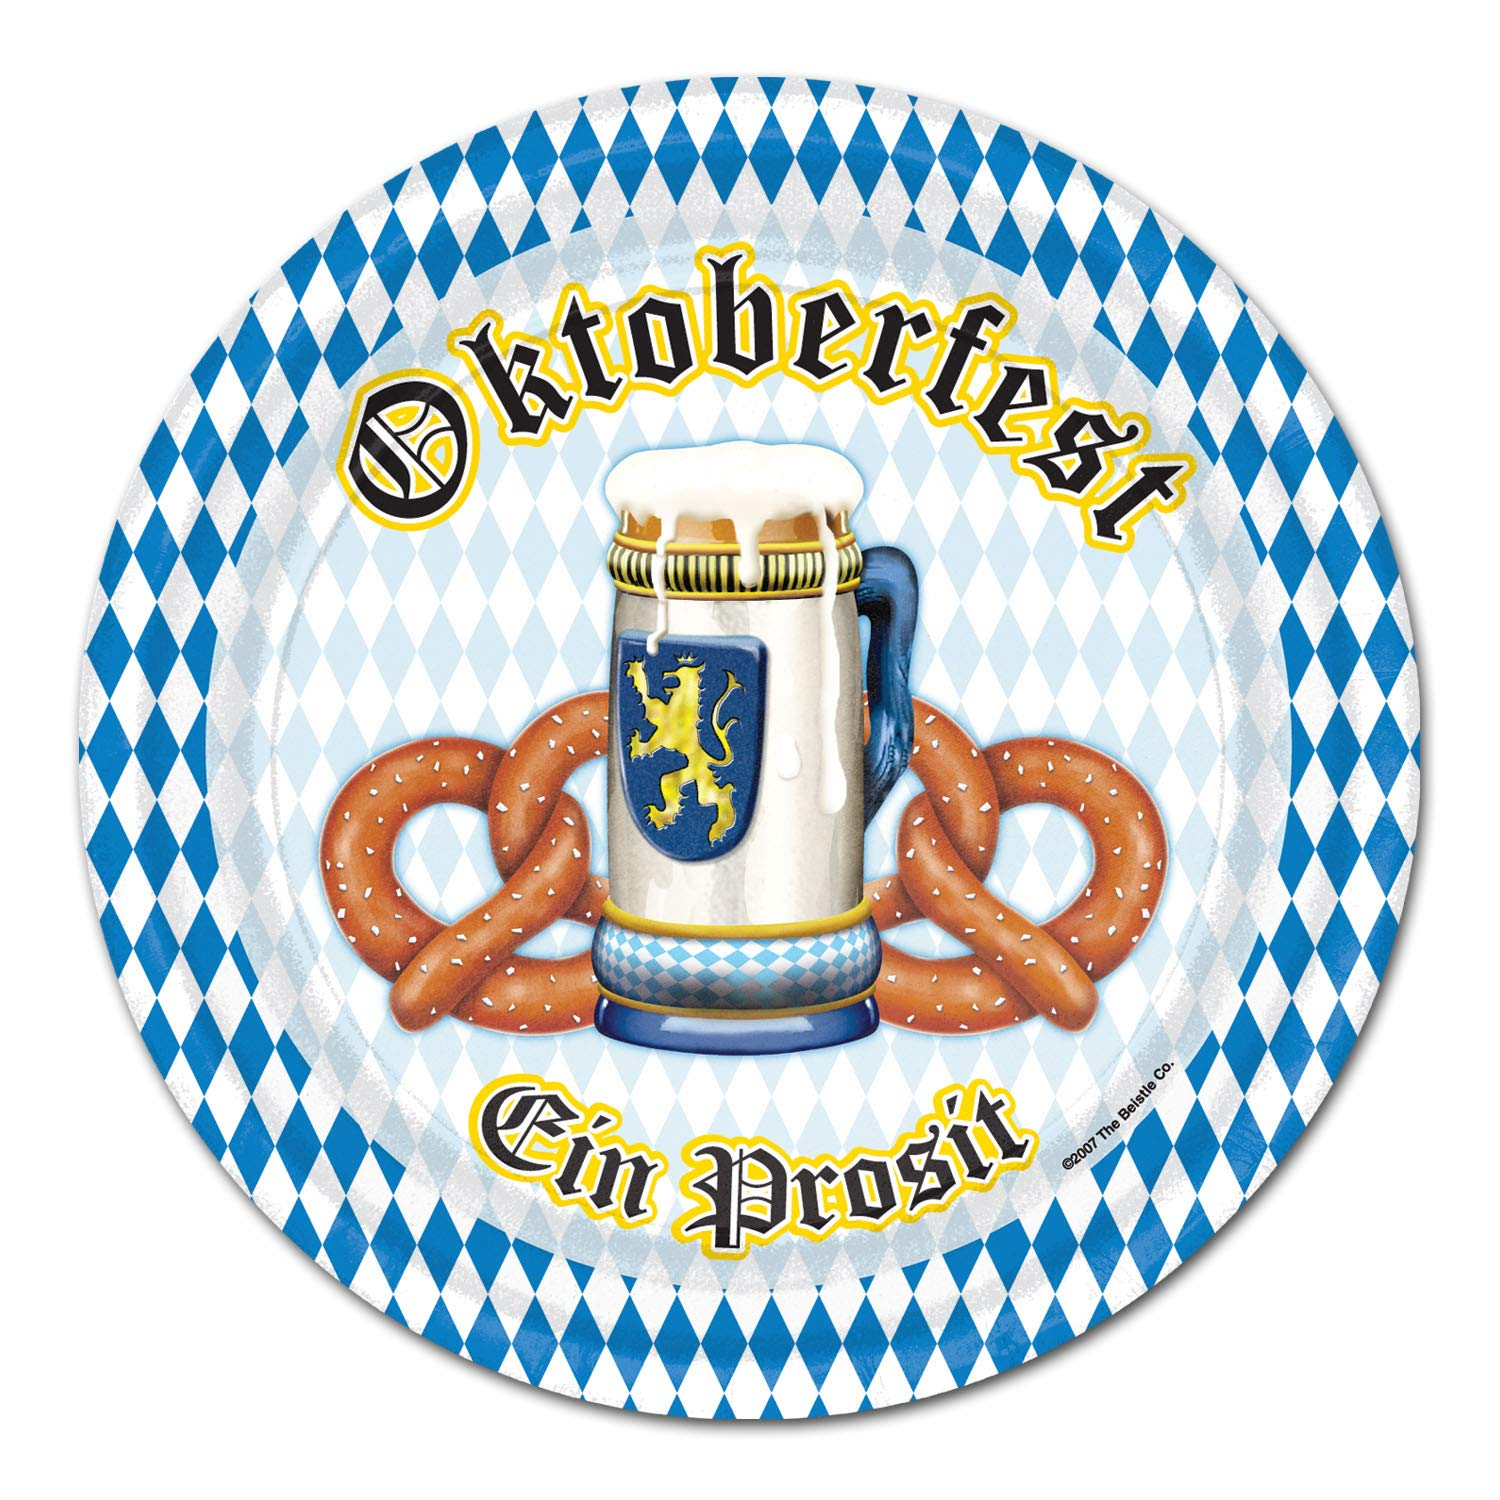 Beistle 2018 Oktoberfest EIN Prosit Dinner Plates | 9 Inches | (Party Pack: 24 Count)